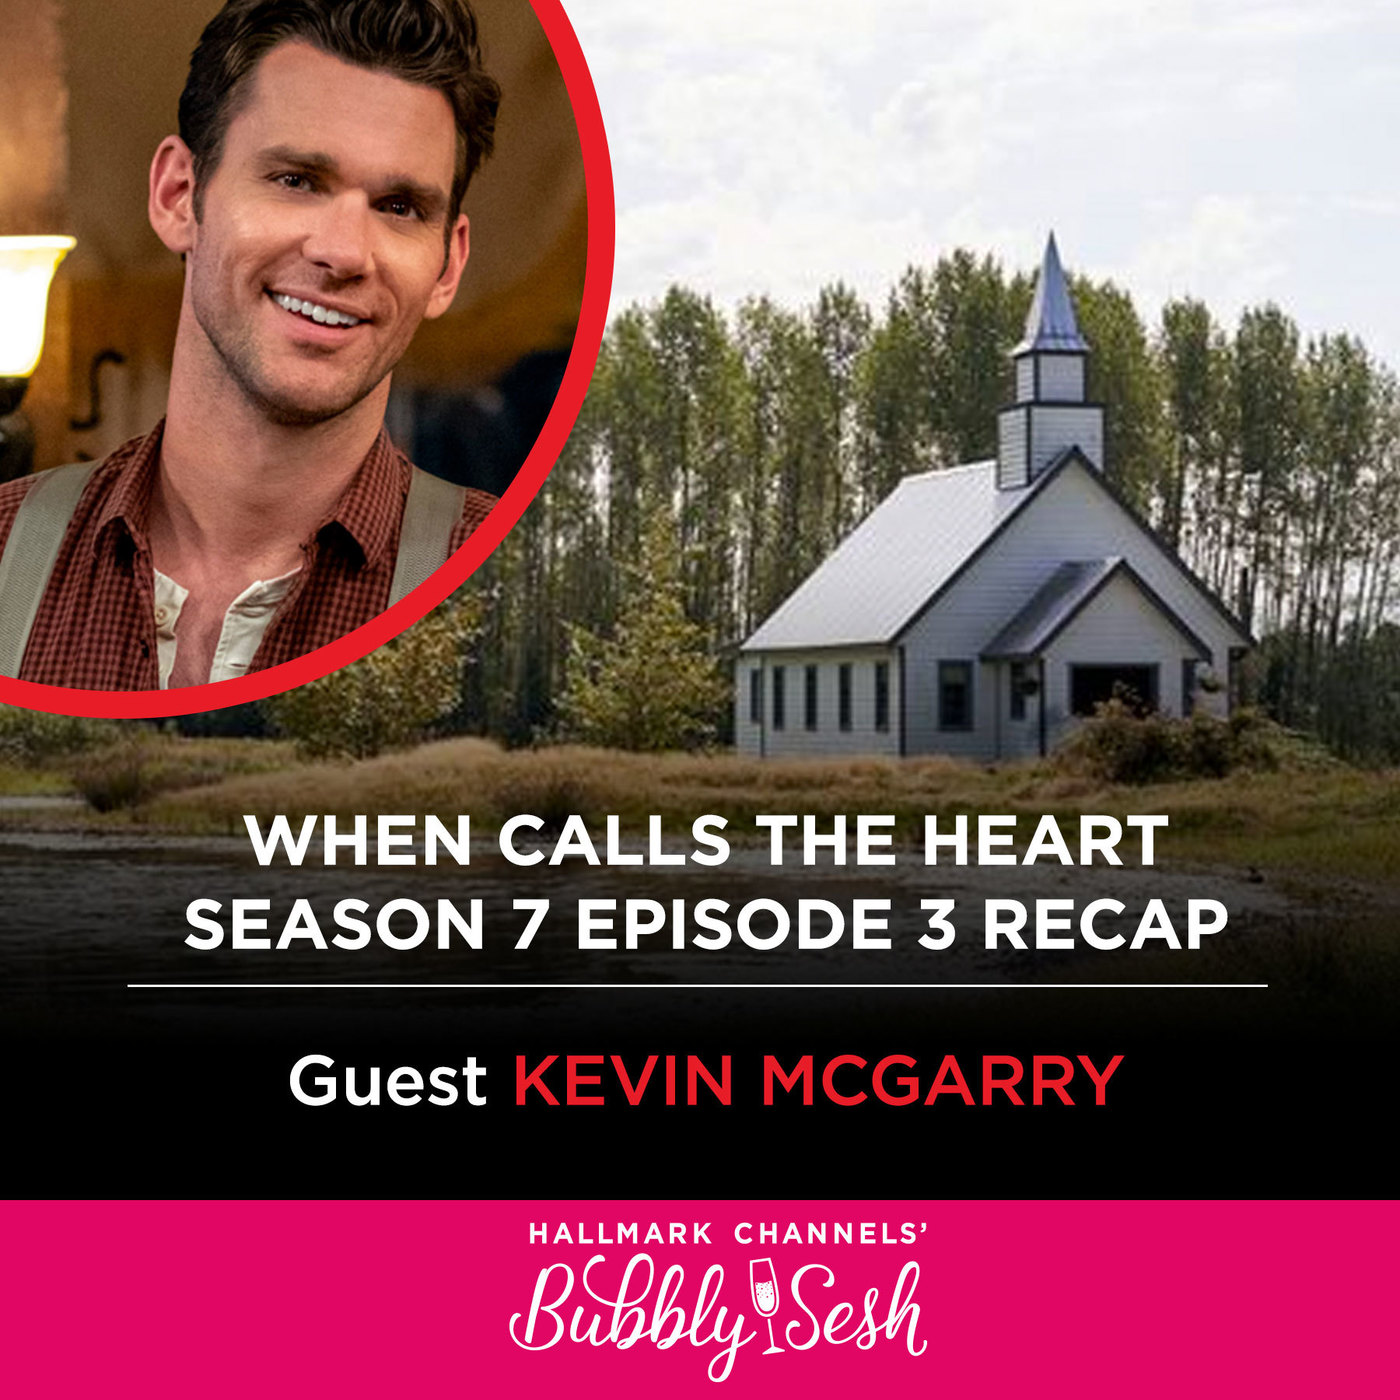 When Calls The Heart Season 7, Episode 3 Recap with Guest Kevin McGarry, Actor